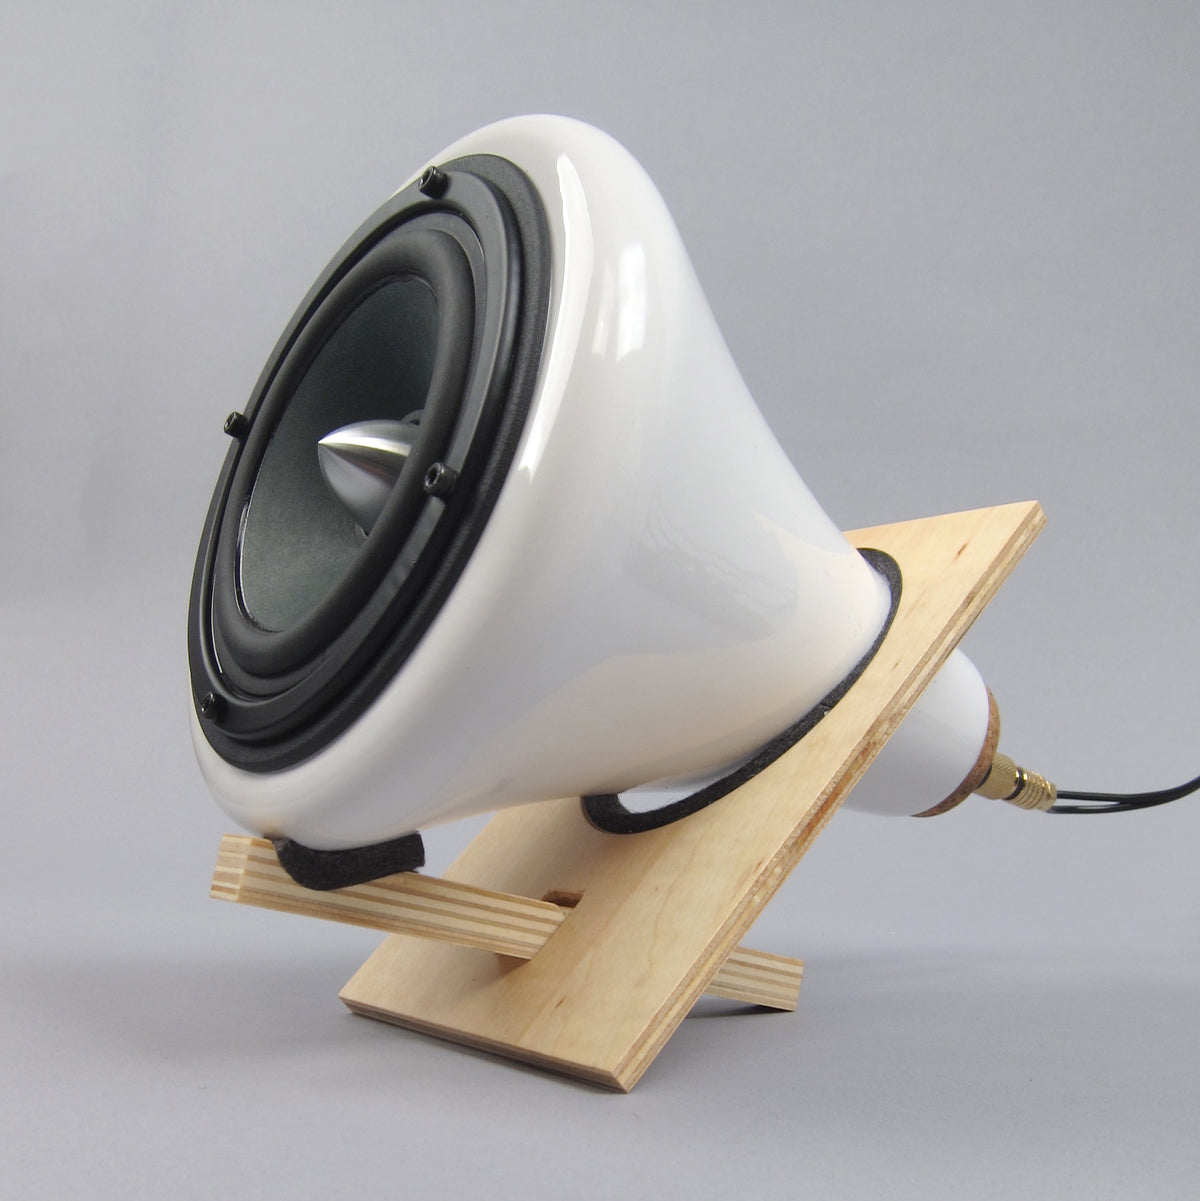 Joey Roth: Ceramic Speakers + Amplifier